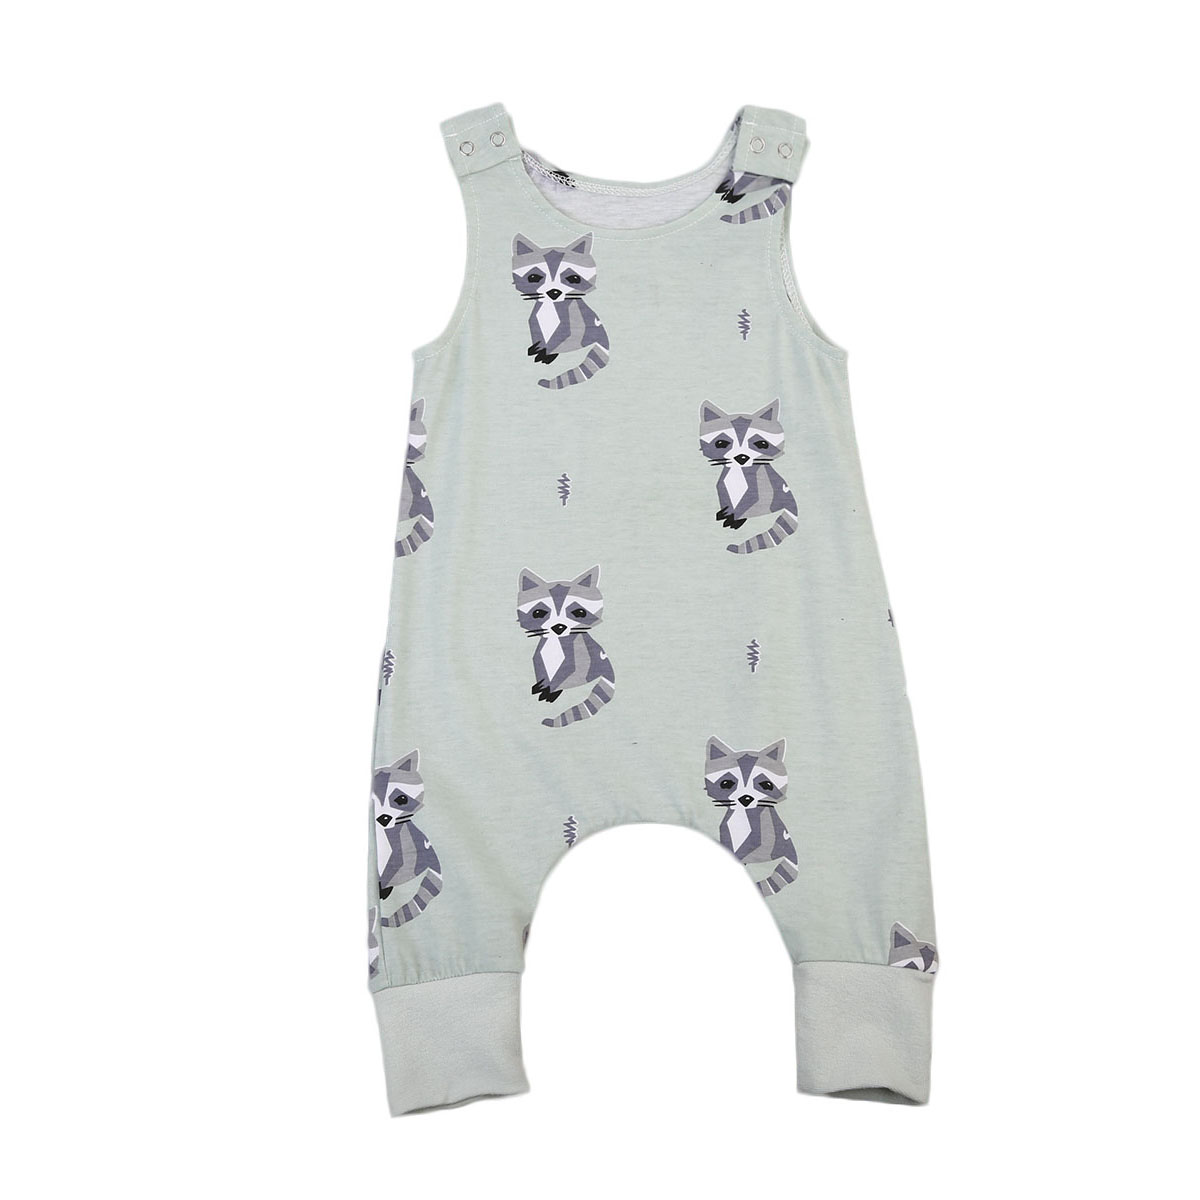 0-24M Toddler Infant Baby Boys Girls Fox Printed   Rompers   Jumpsuit Outfits Clothes for Babies